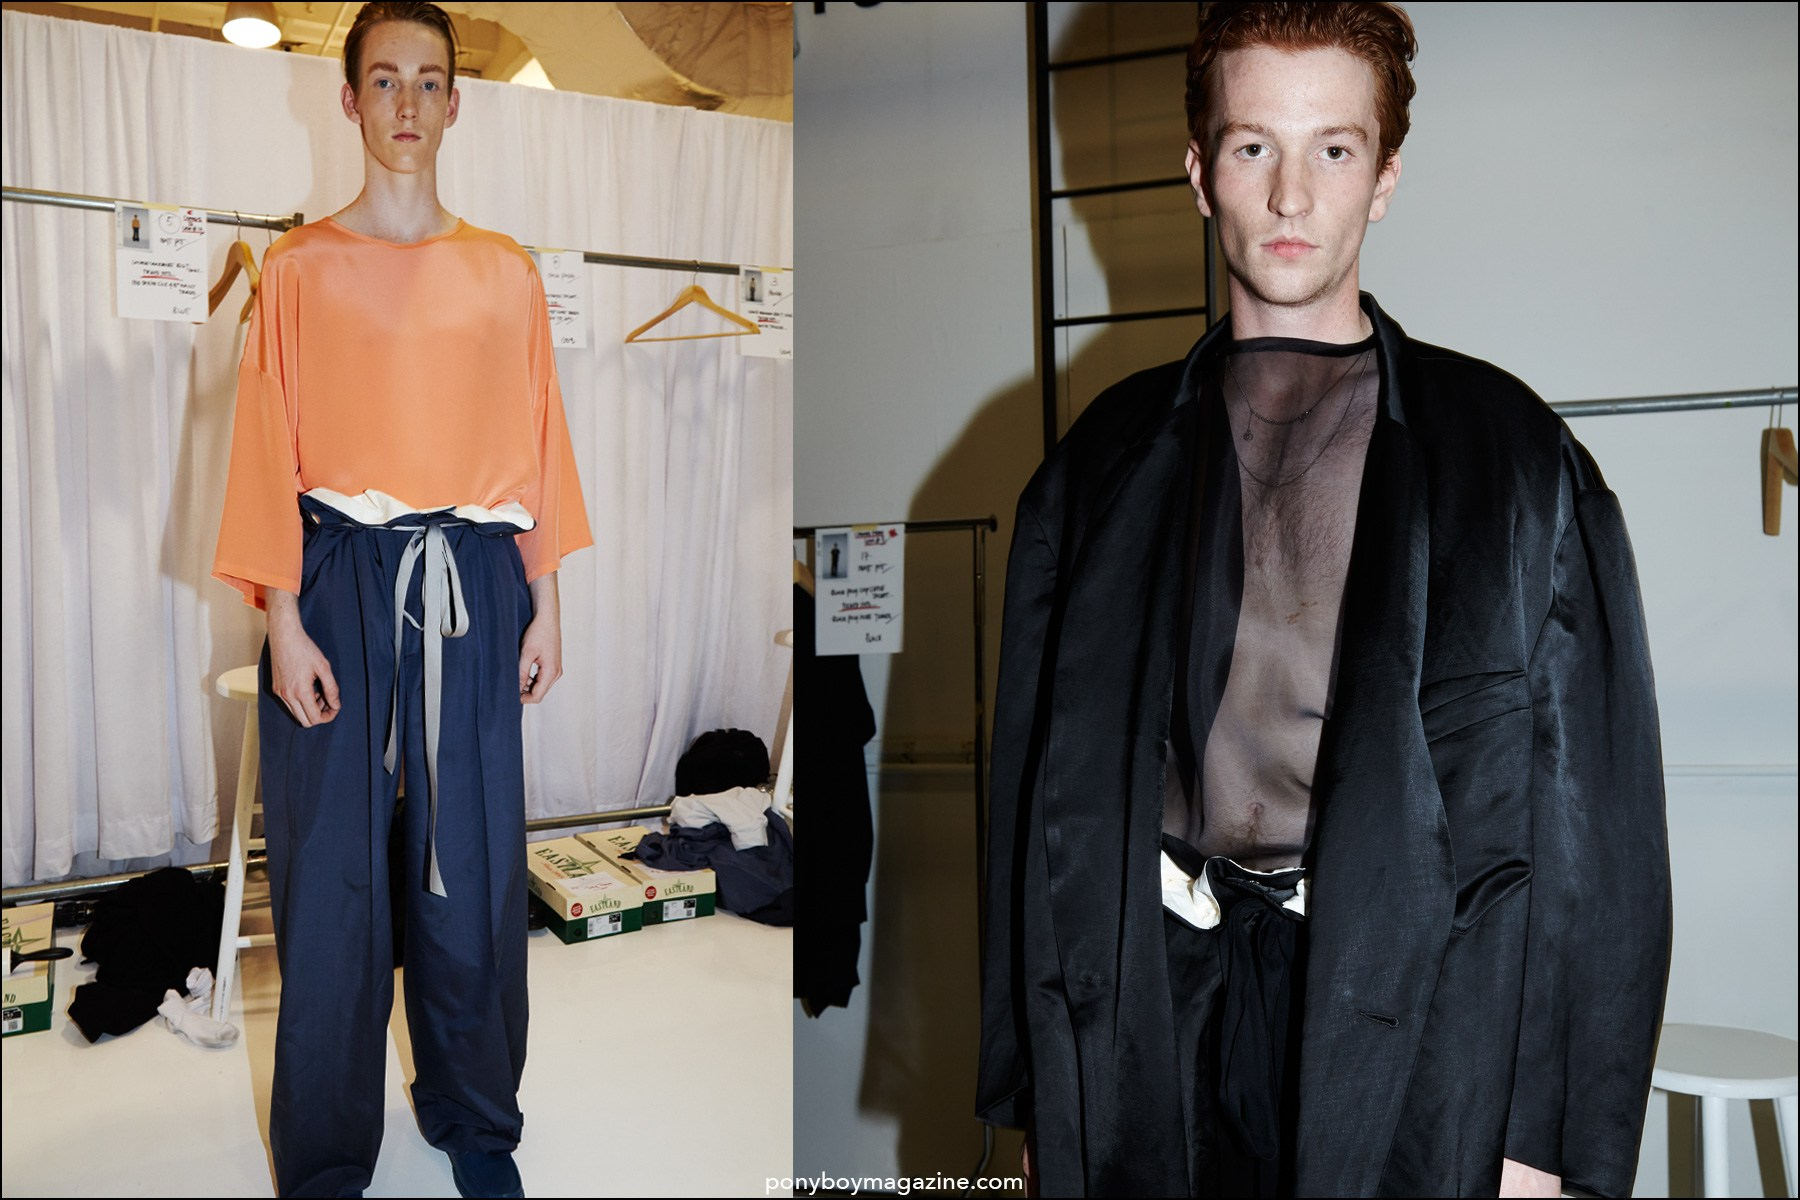 Red-headed models Matt Pitt and Greg France, photographed backstage at the Duckie Brown Spring/Summer 2016 menswear collection. Photographs by Alexander Thompson for Ponyboy magazine NY.